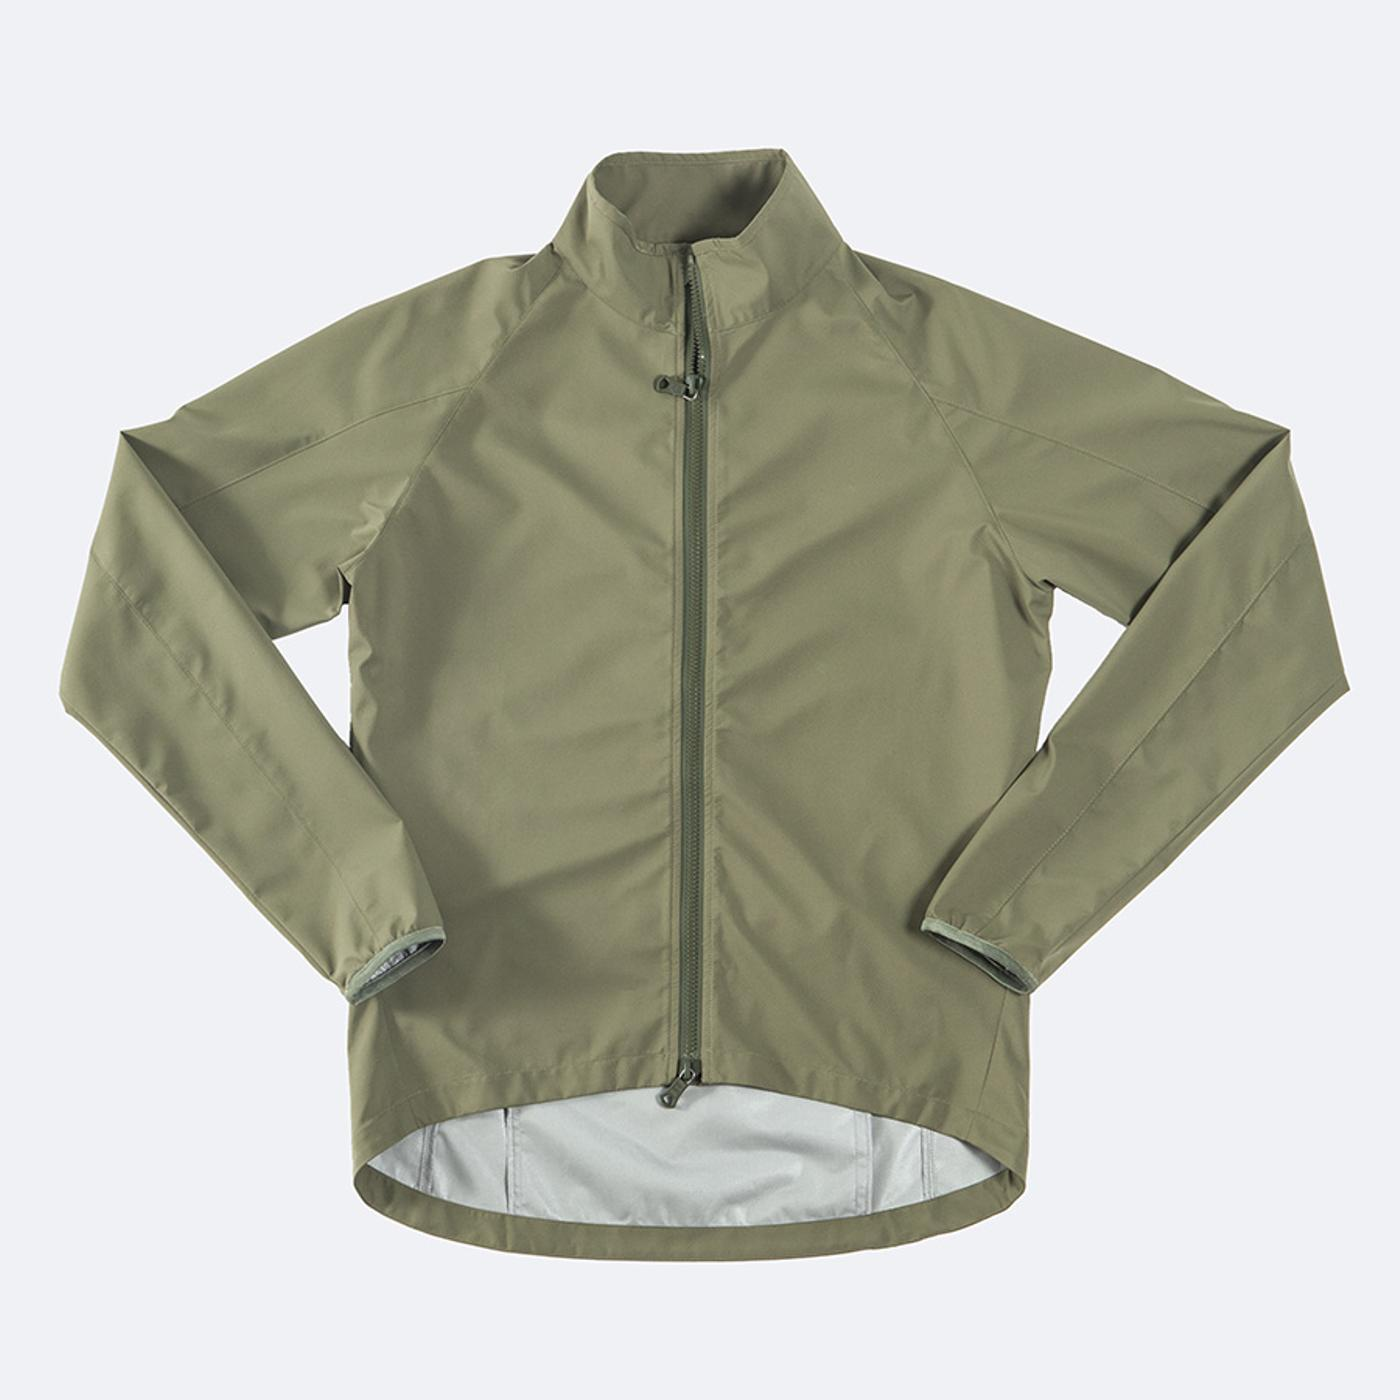 Search and State: S1-J Riding Jacket in Sage